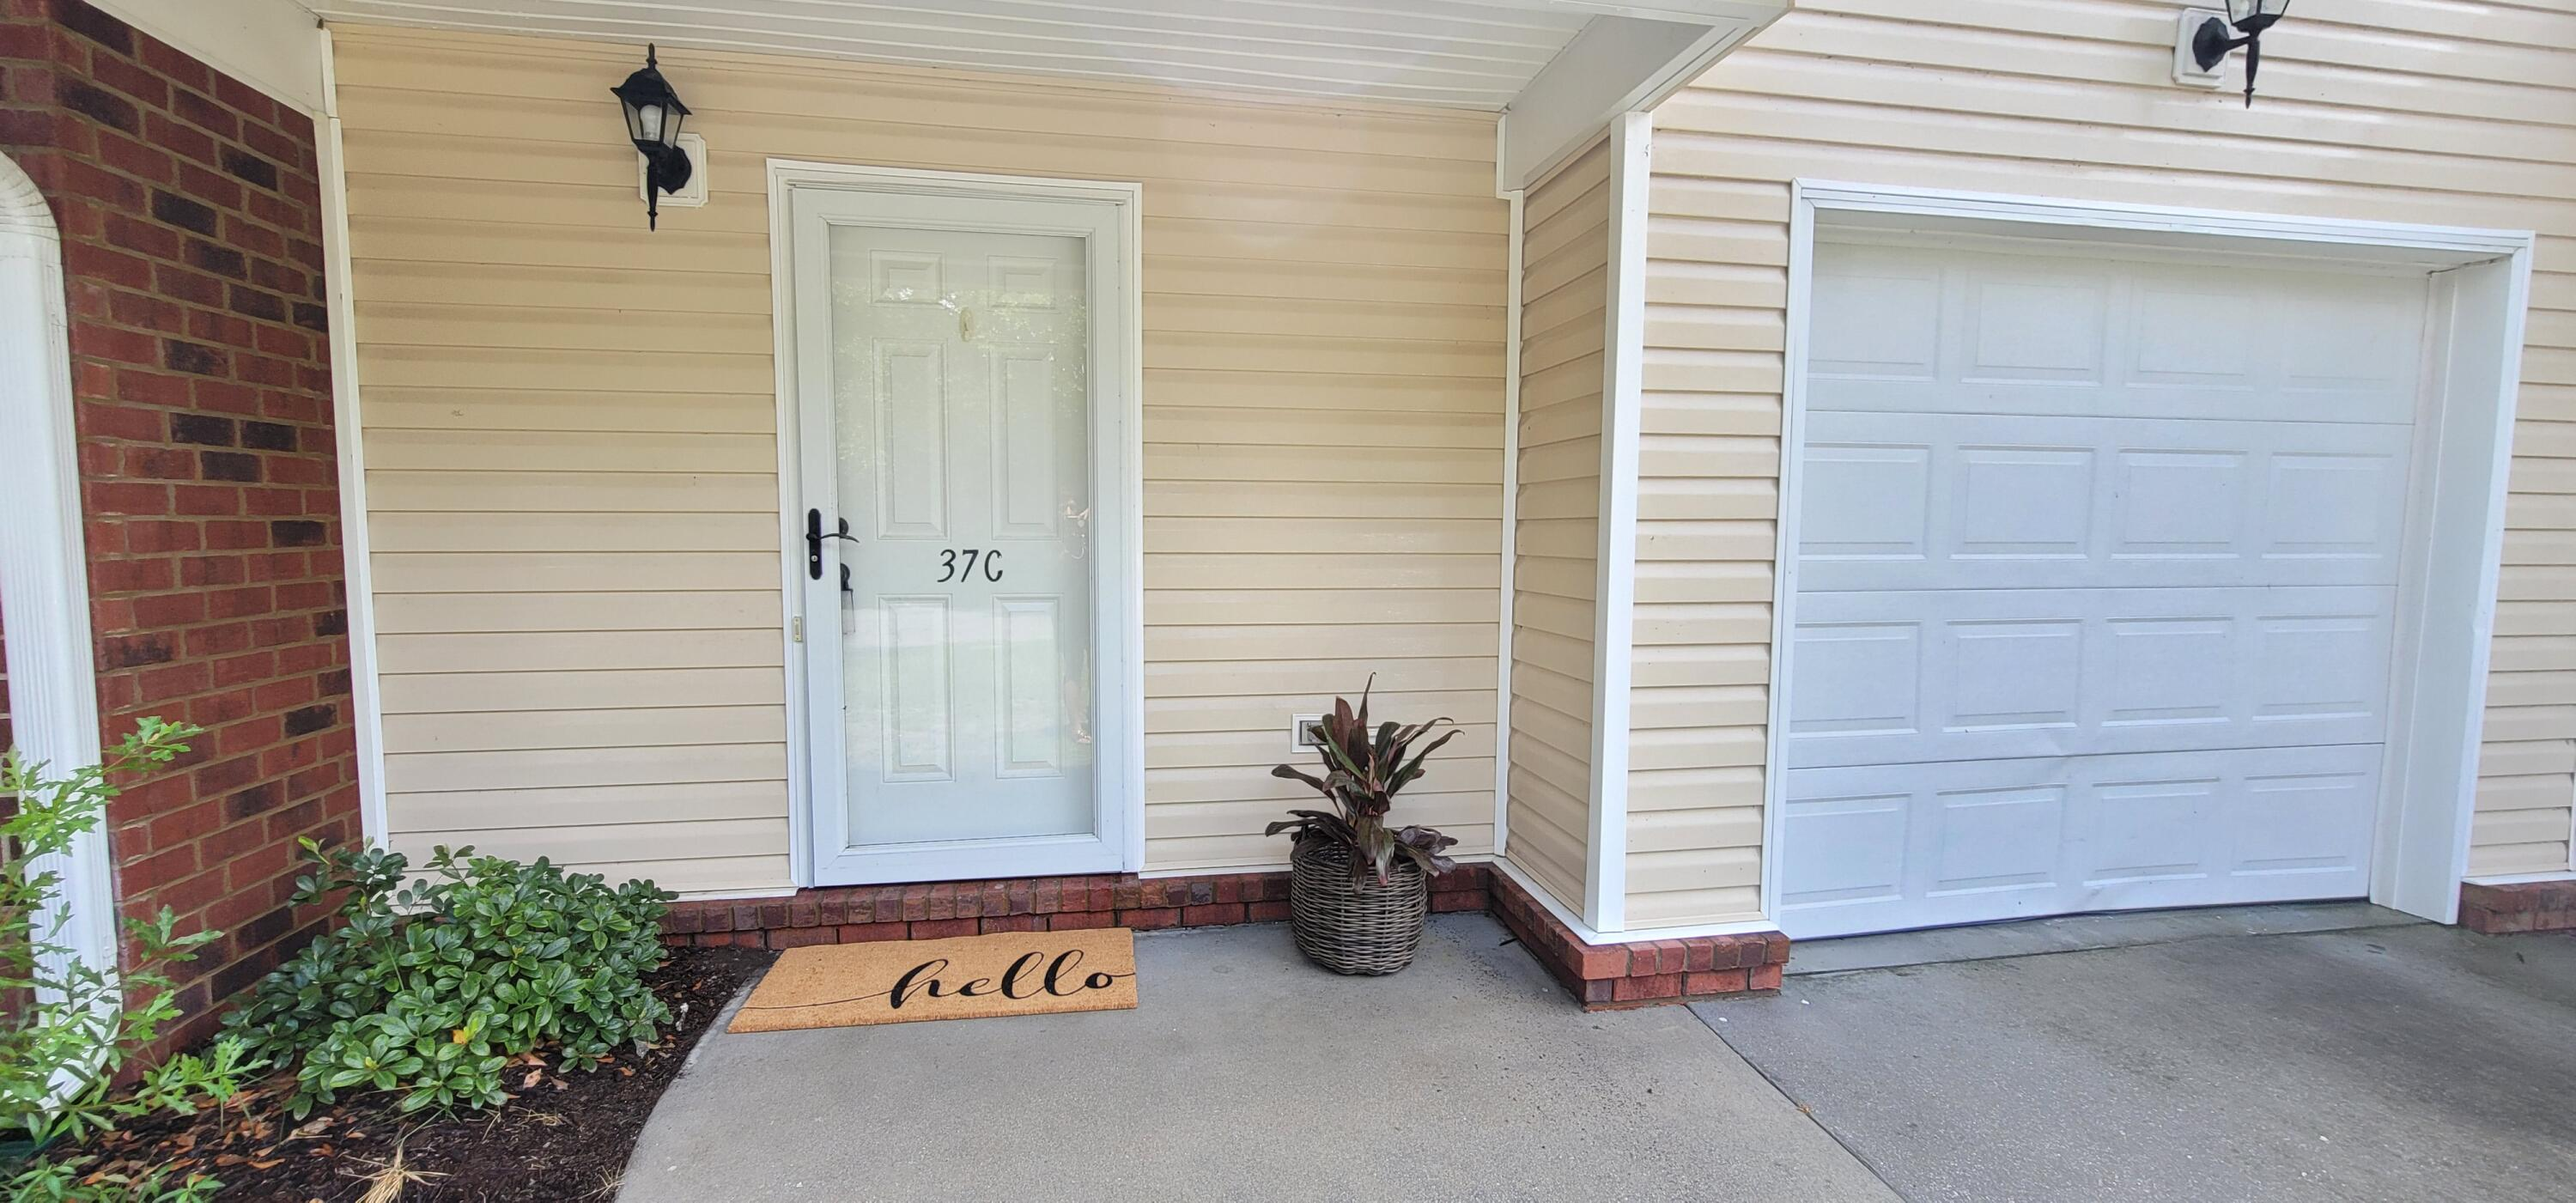 Rivers Point Row Homes For Sale - 37 Rivers Point, Charleston, SC - 21